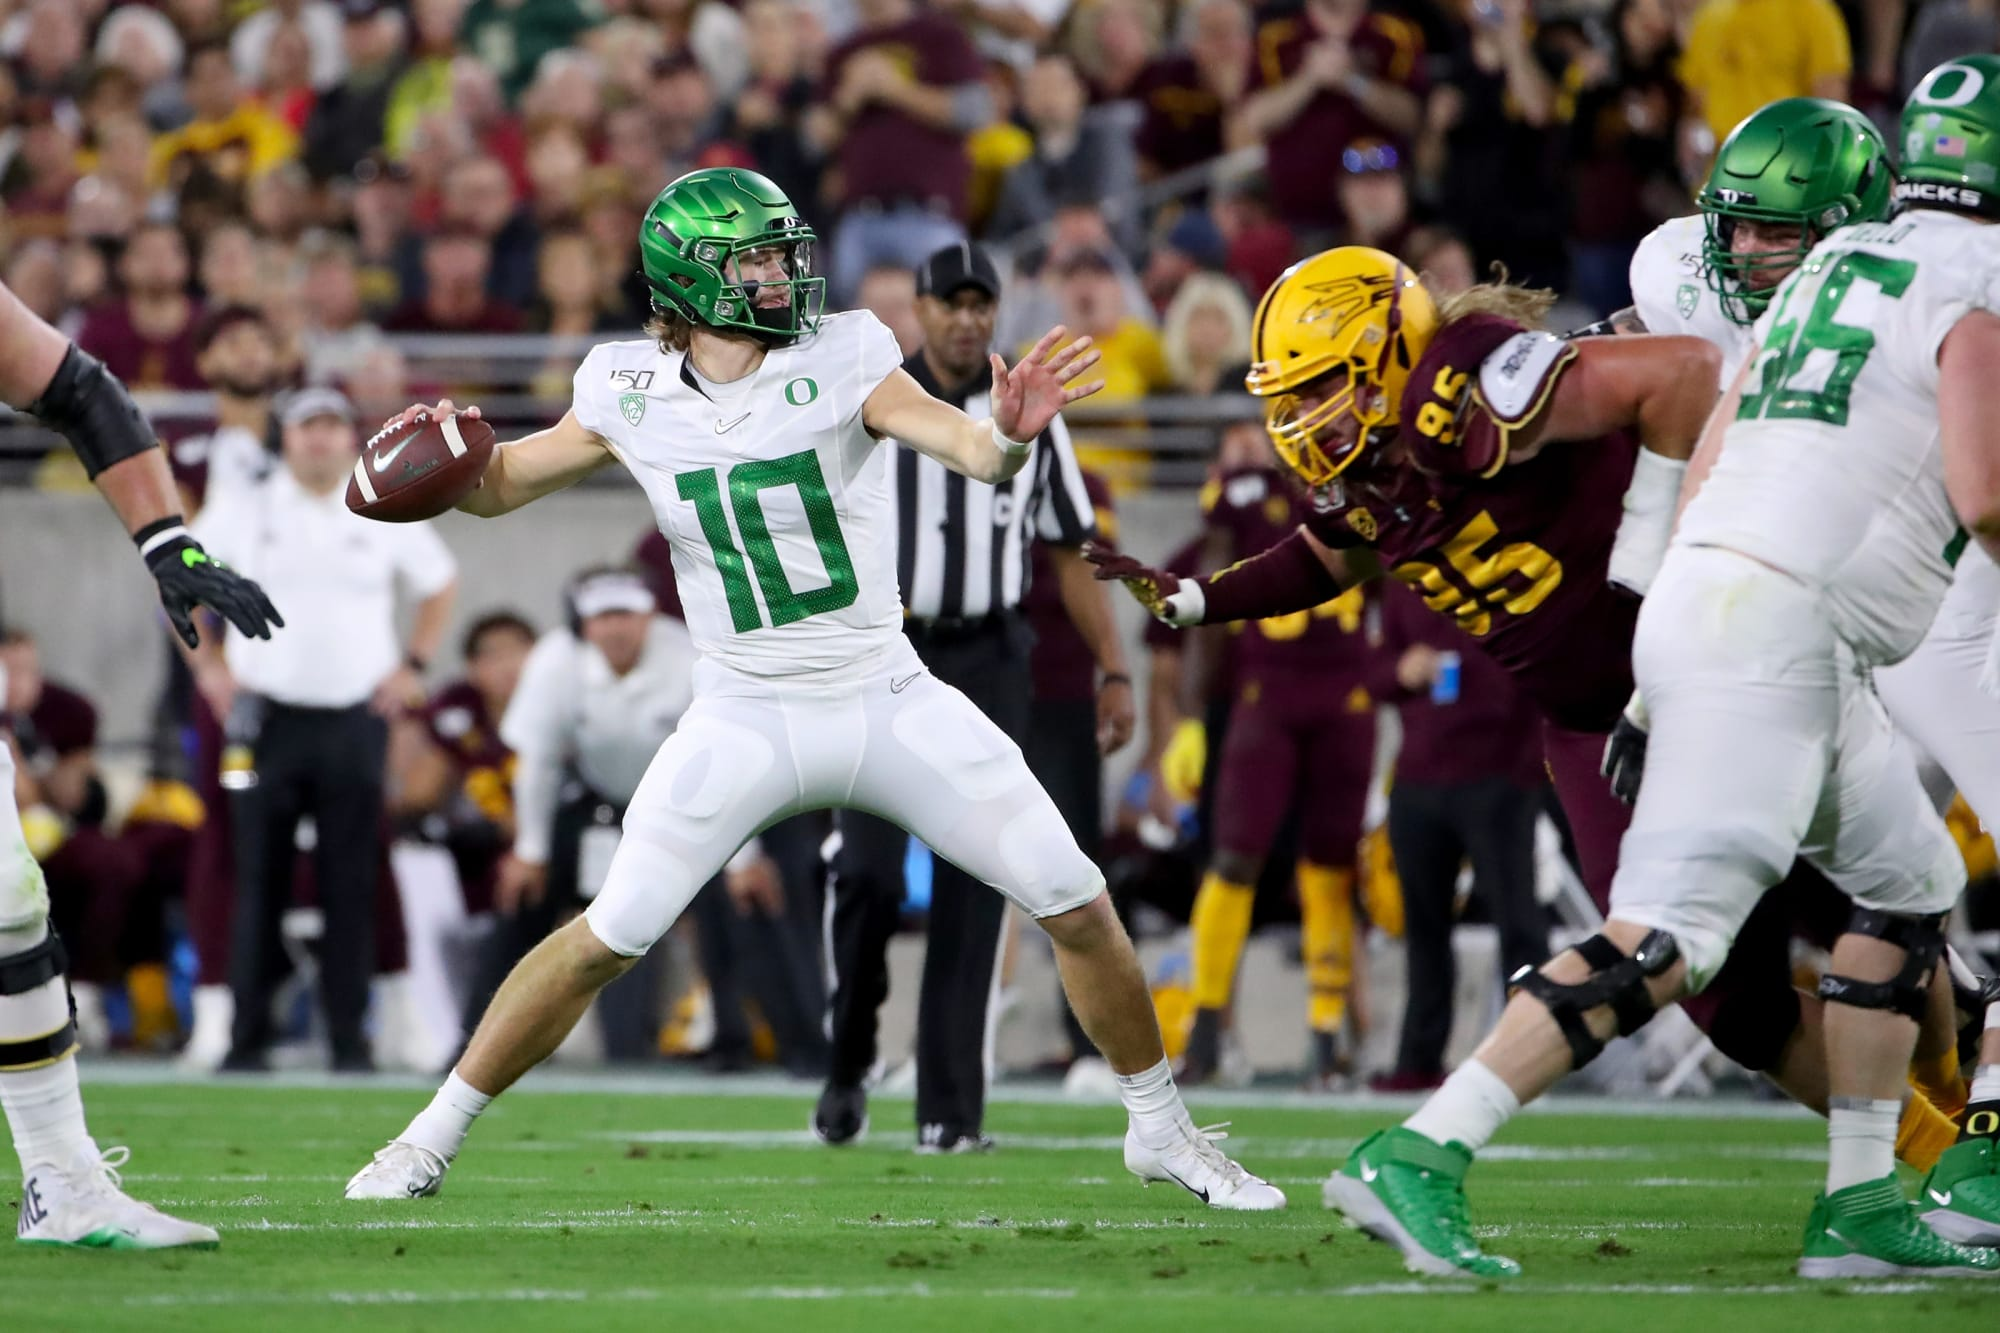 Los Angeles Chargers: Offensive line will stunt Justin Herbert development